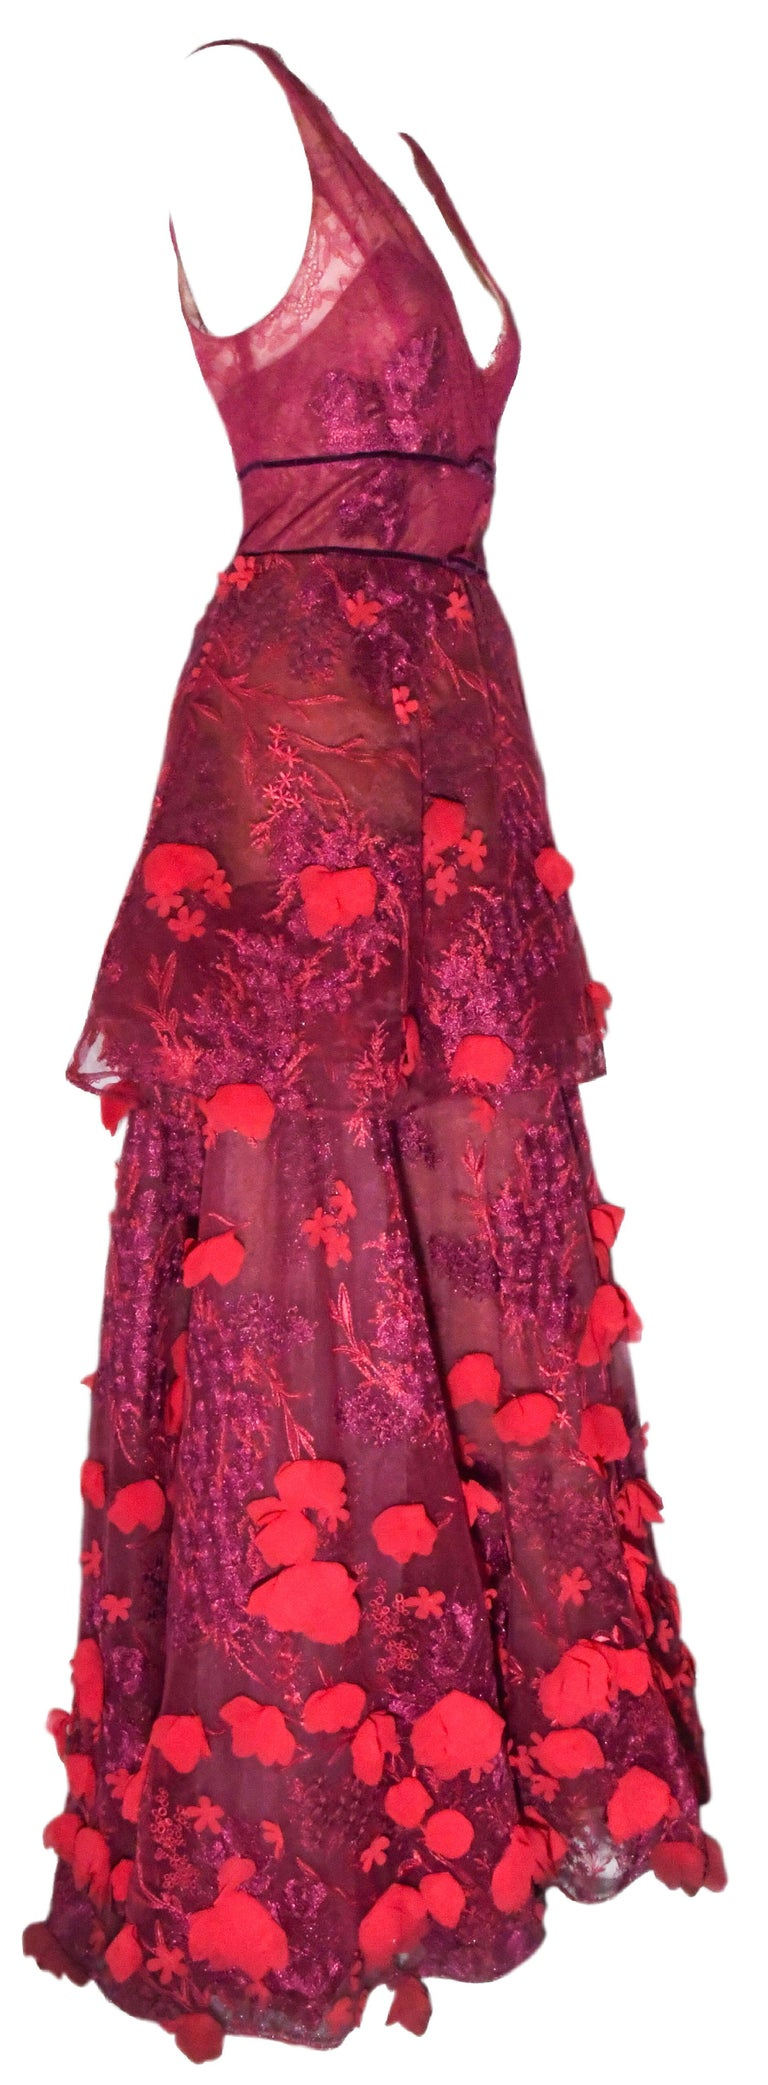 Women's Marchesa Notte Pink Gown with Flower Appliques Throughout For Sale